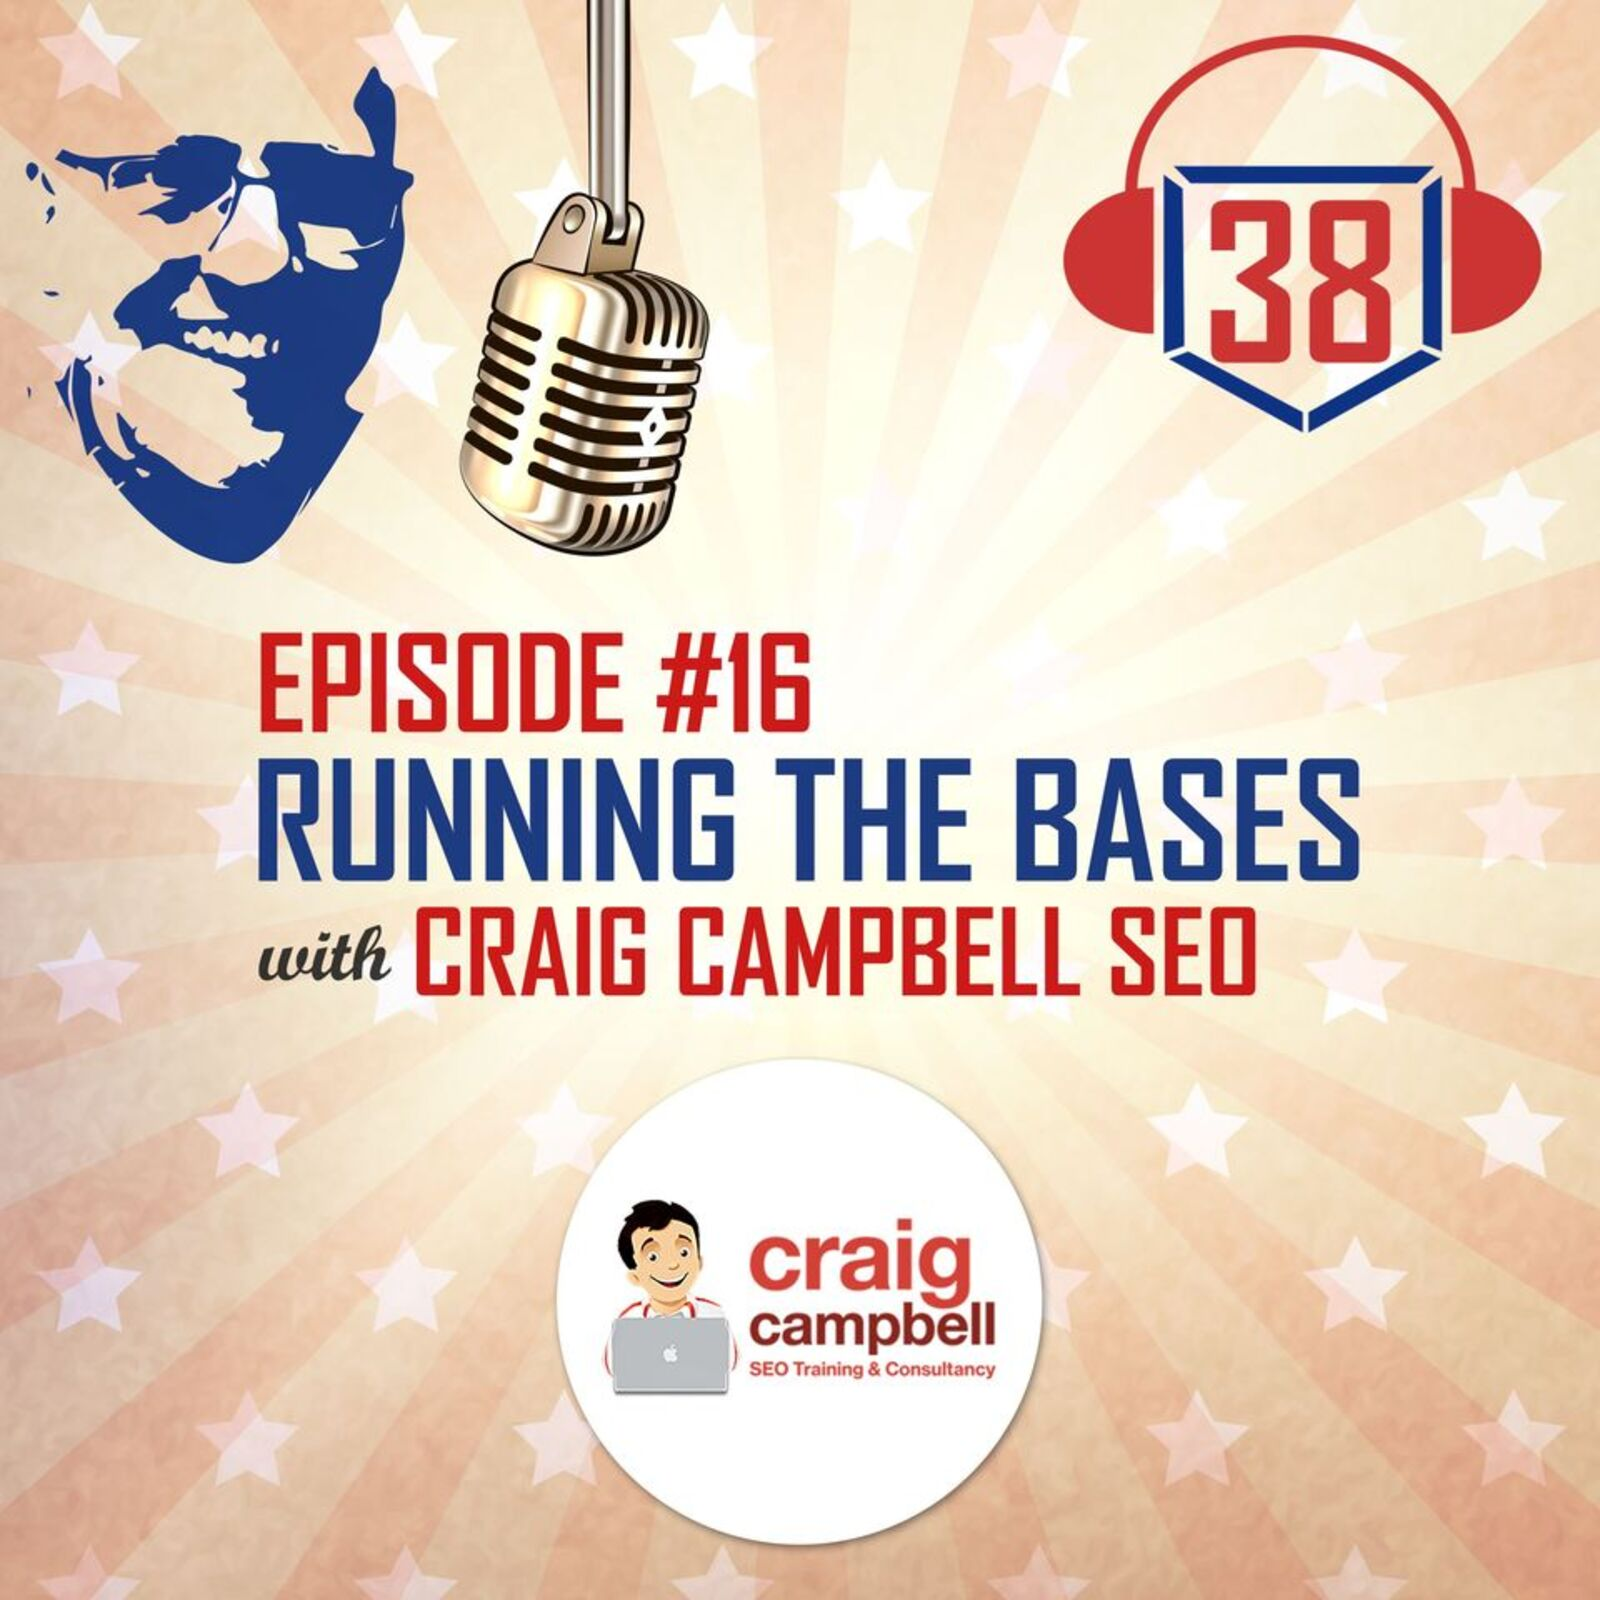 Glasgow Based SEO Craig Campbell Makes Guest Appearance on Running the Bases with Small Businesses